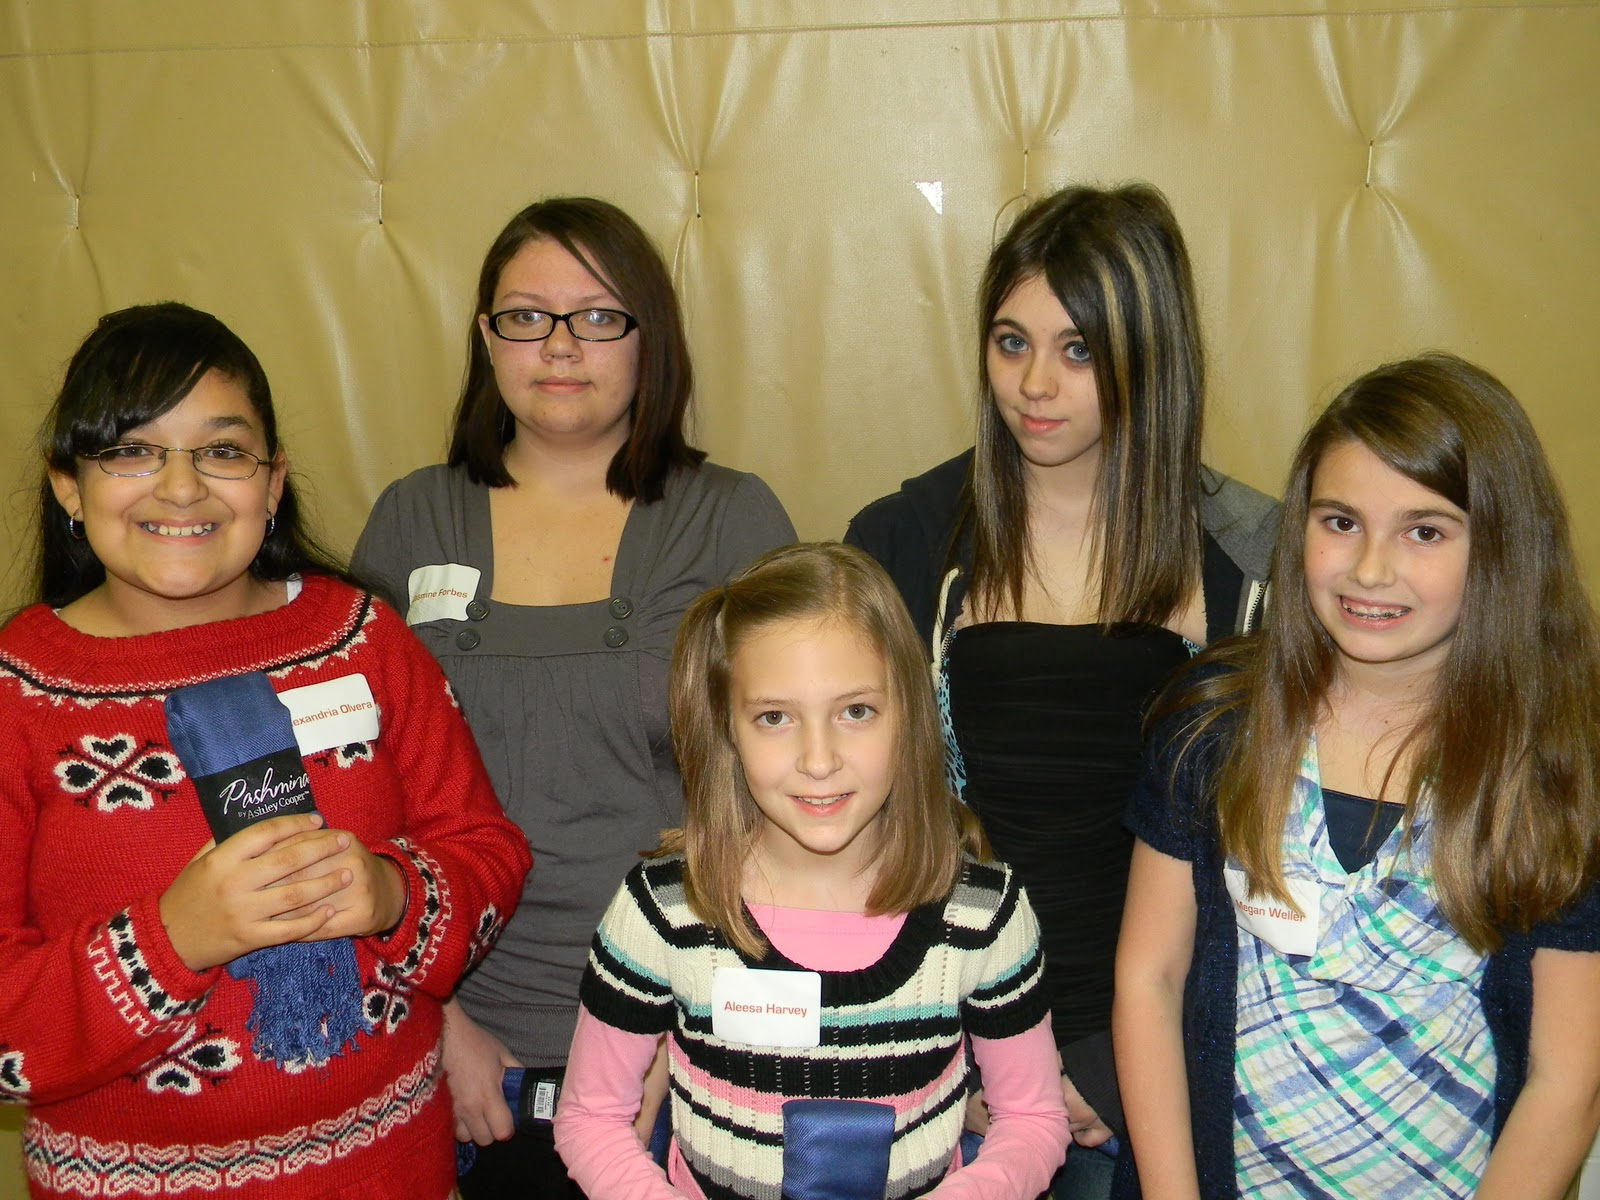 2012 bullying prevention essay contest Increasing the awareness of teen depression, anxiety, & supporting suicide prevention tom karlin foundation lenexa @talklistenact #graduate together.